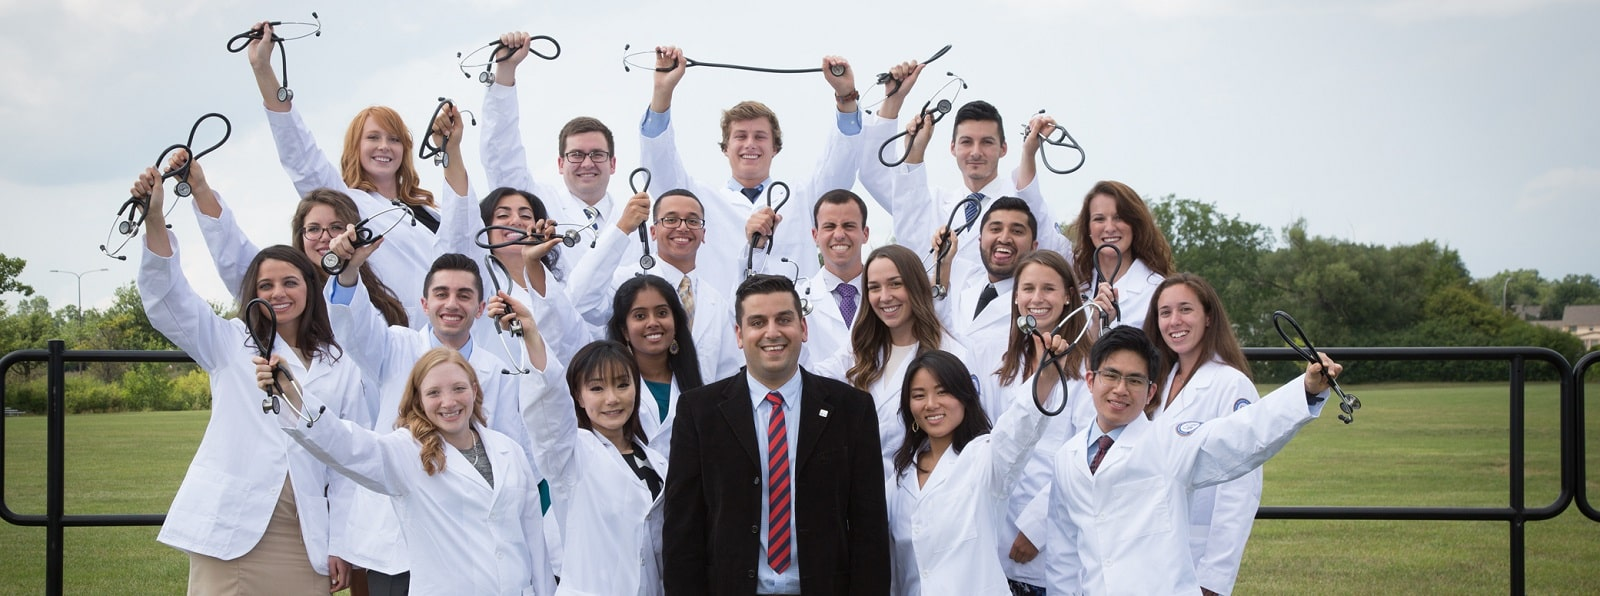 A PRISM group stands together wearing their white coats, smiling, and holding their stethoscopes above their heads.